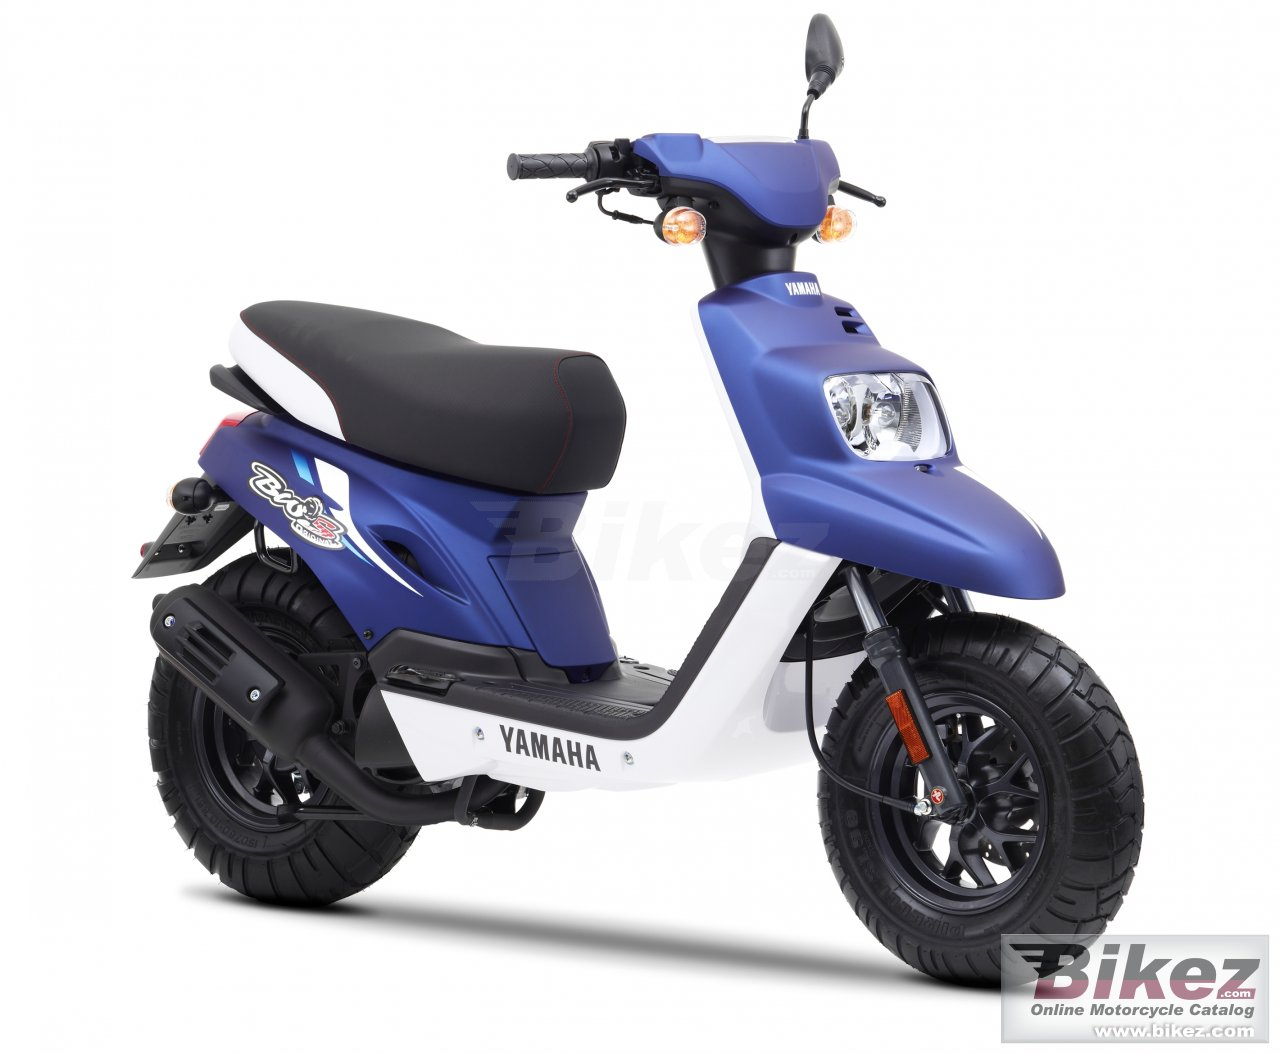 2013 Yamaha BWs Original 50 specifications and pictures